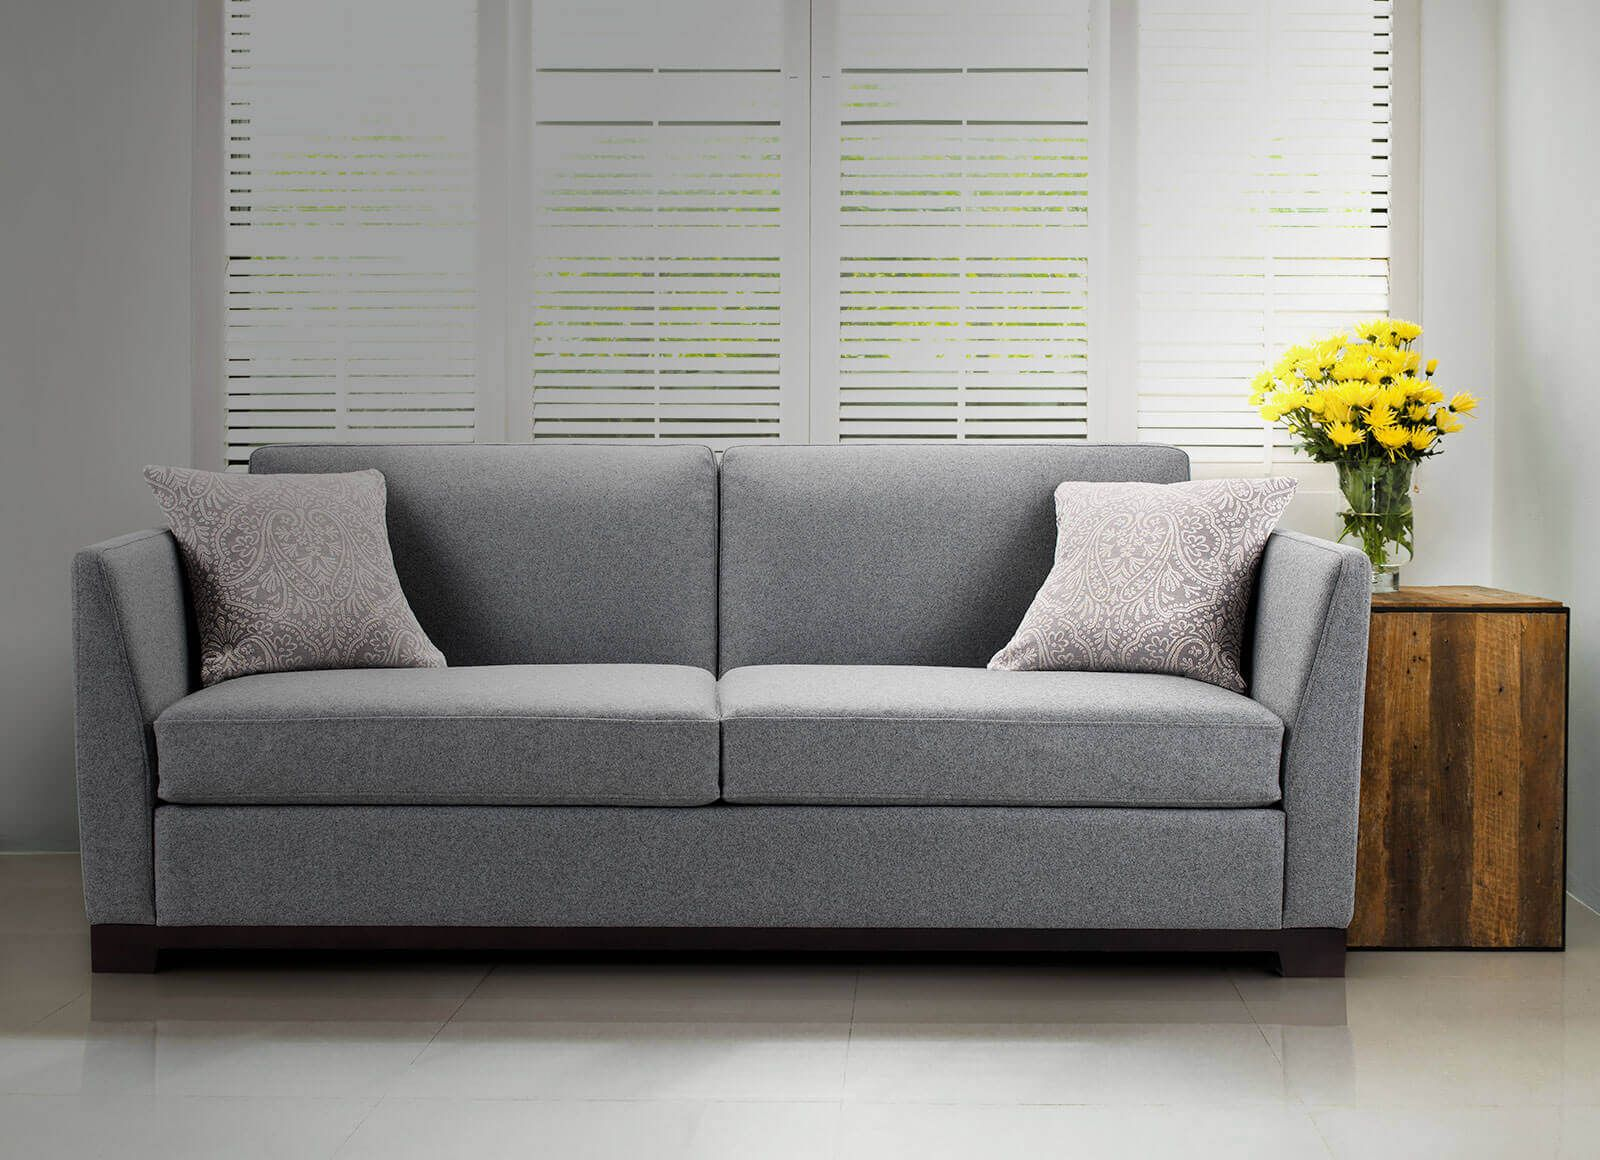 Furl And It S A Sofa Bed Comfortable Sofa Bed Stylish Sofa Bed